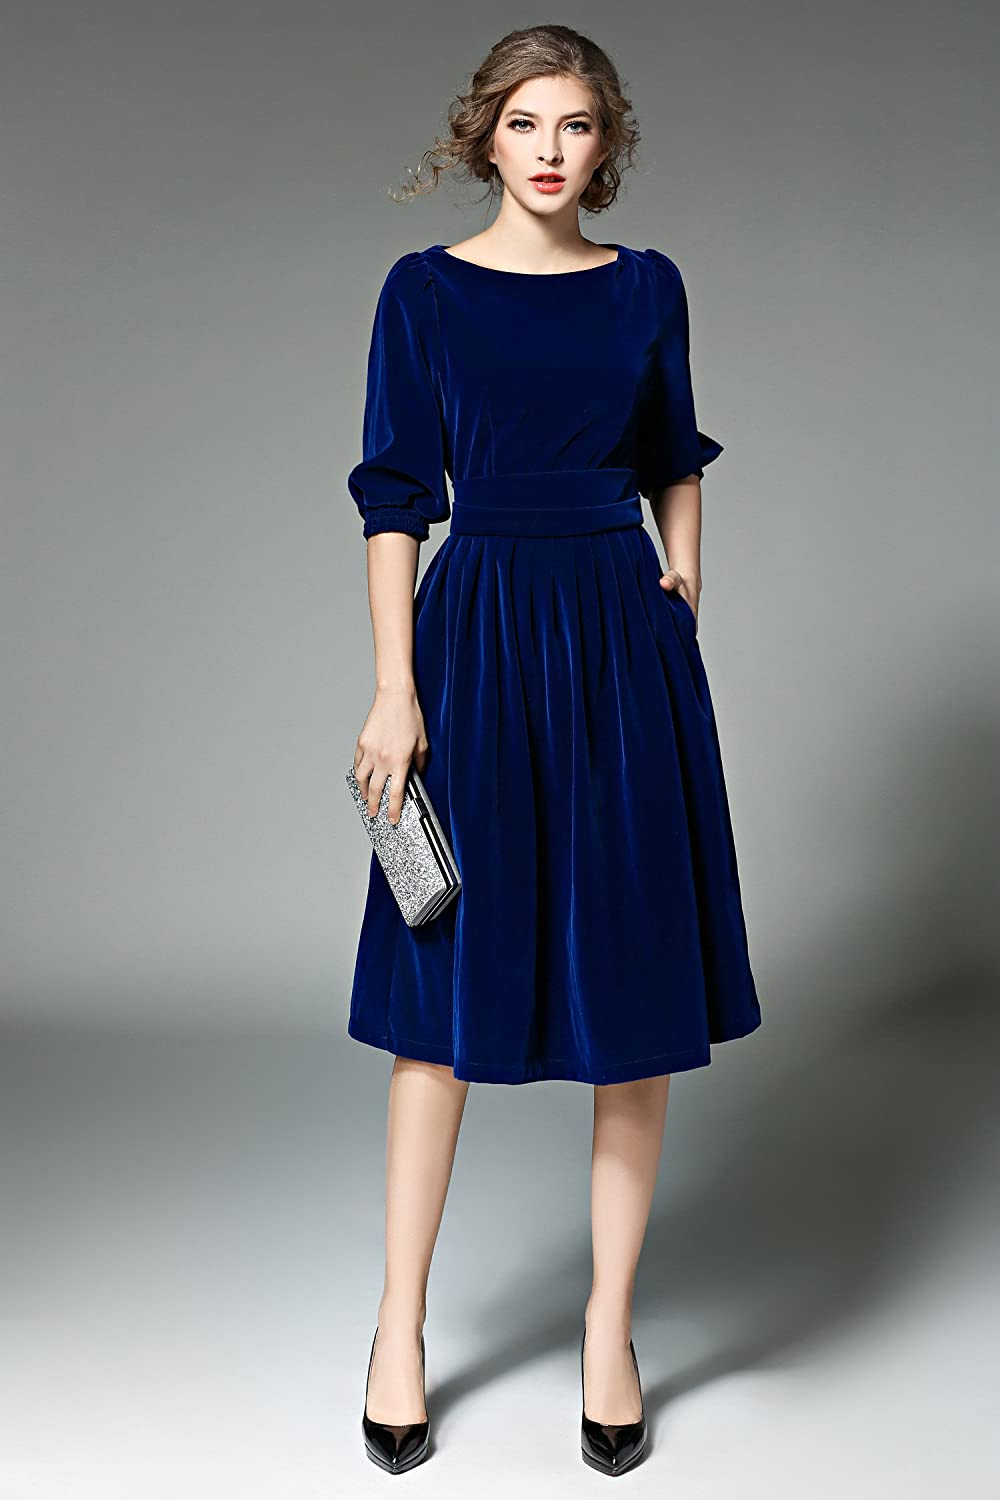 1940s Dresses | 40s Dress, Swing Dress Womens Vintage Round Neck Velvet Tunic Swing A-Line Dress $48.98 AT vintagedancer.com